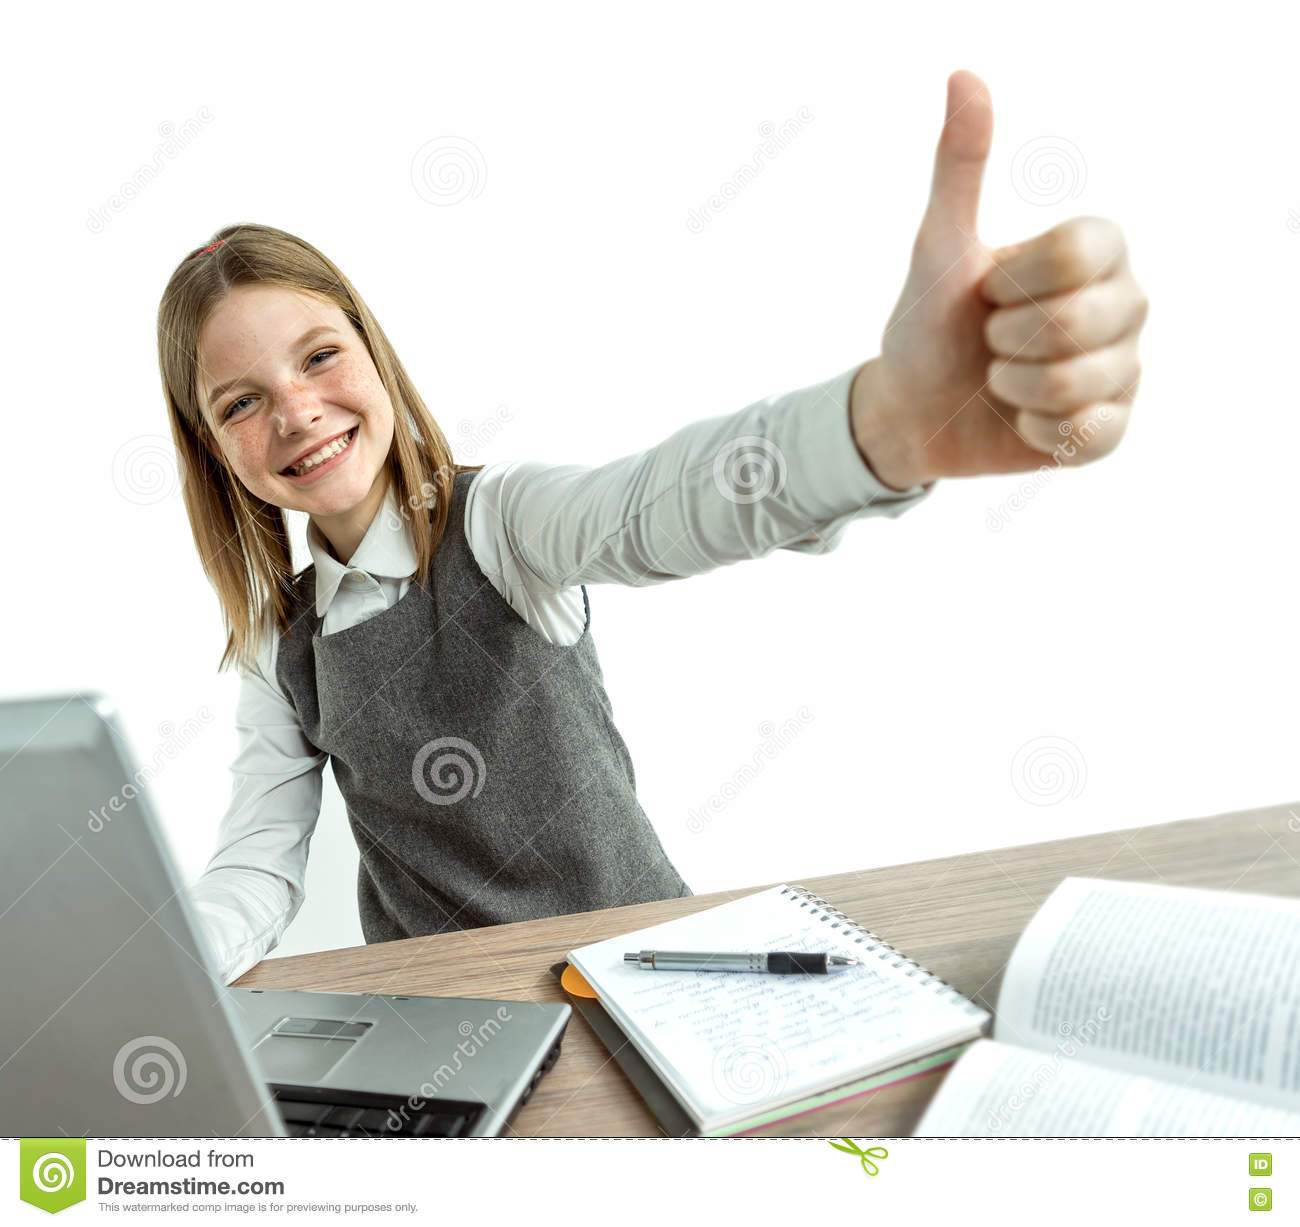 Clever School Girl: Happy Smiling Young Girl Showing Thumbs Up Gesture While